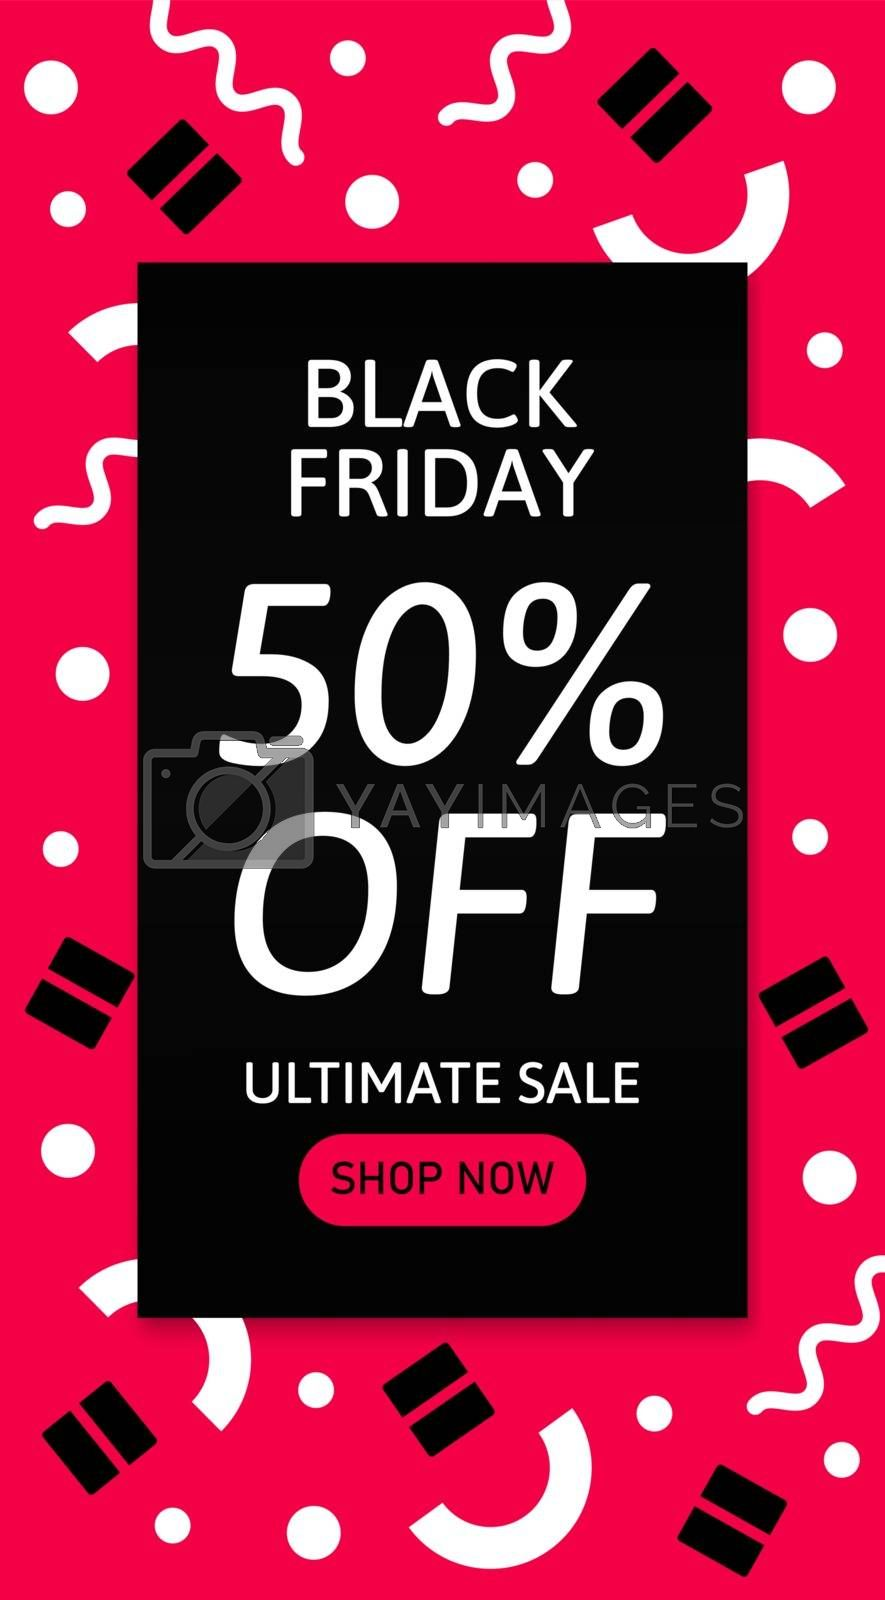 Design template card with geometric elements and text. Black Friday. Ultimate sale. Shop now.